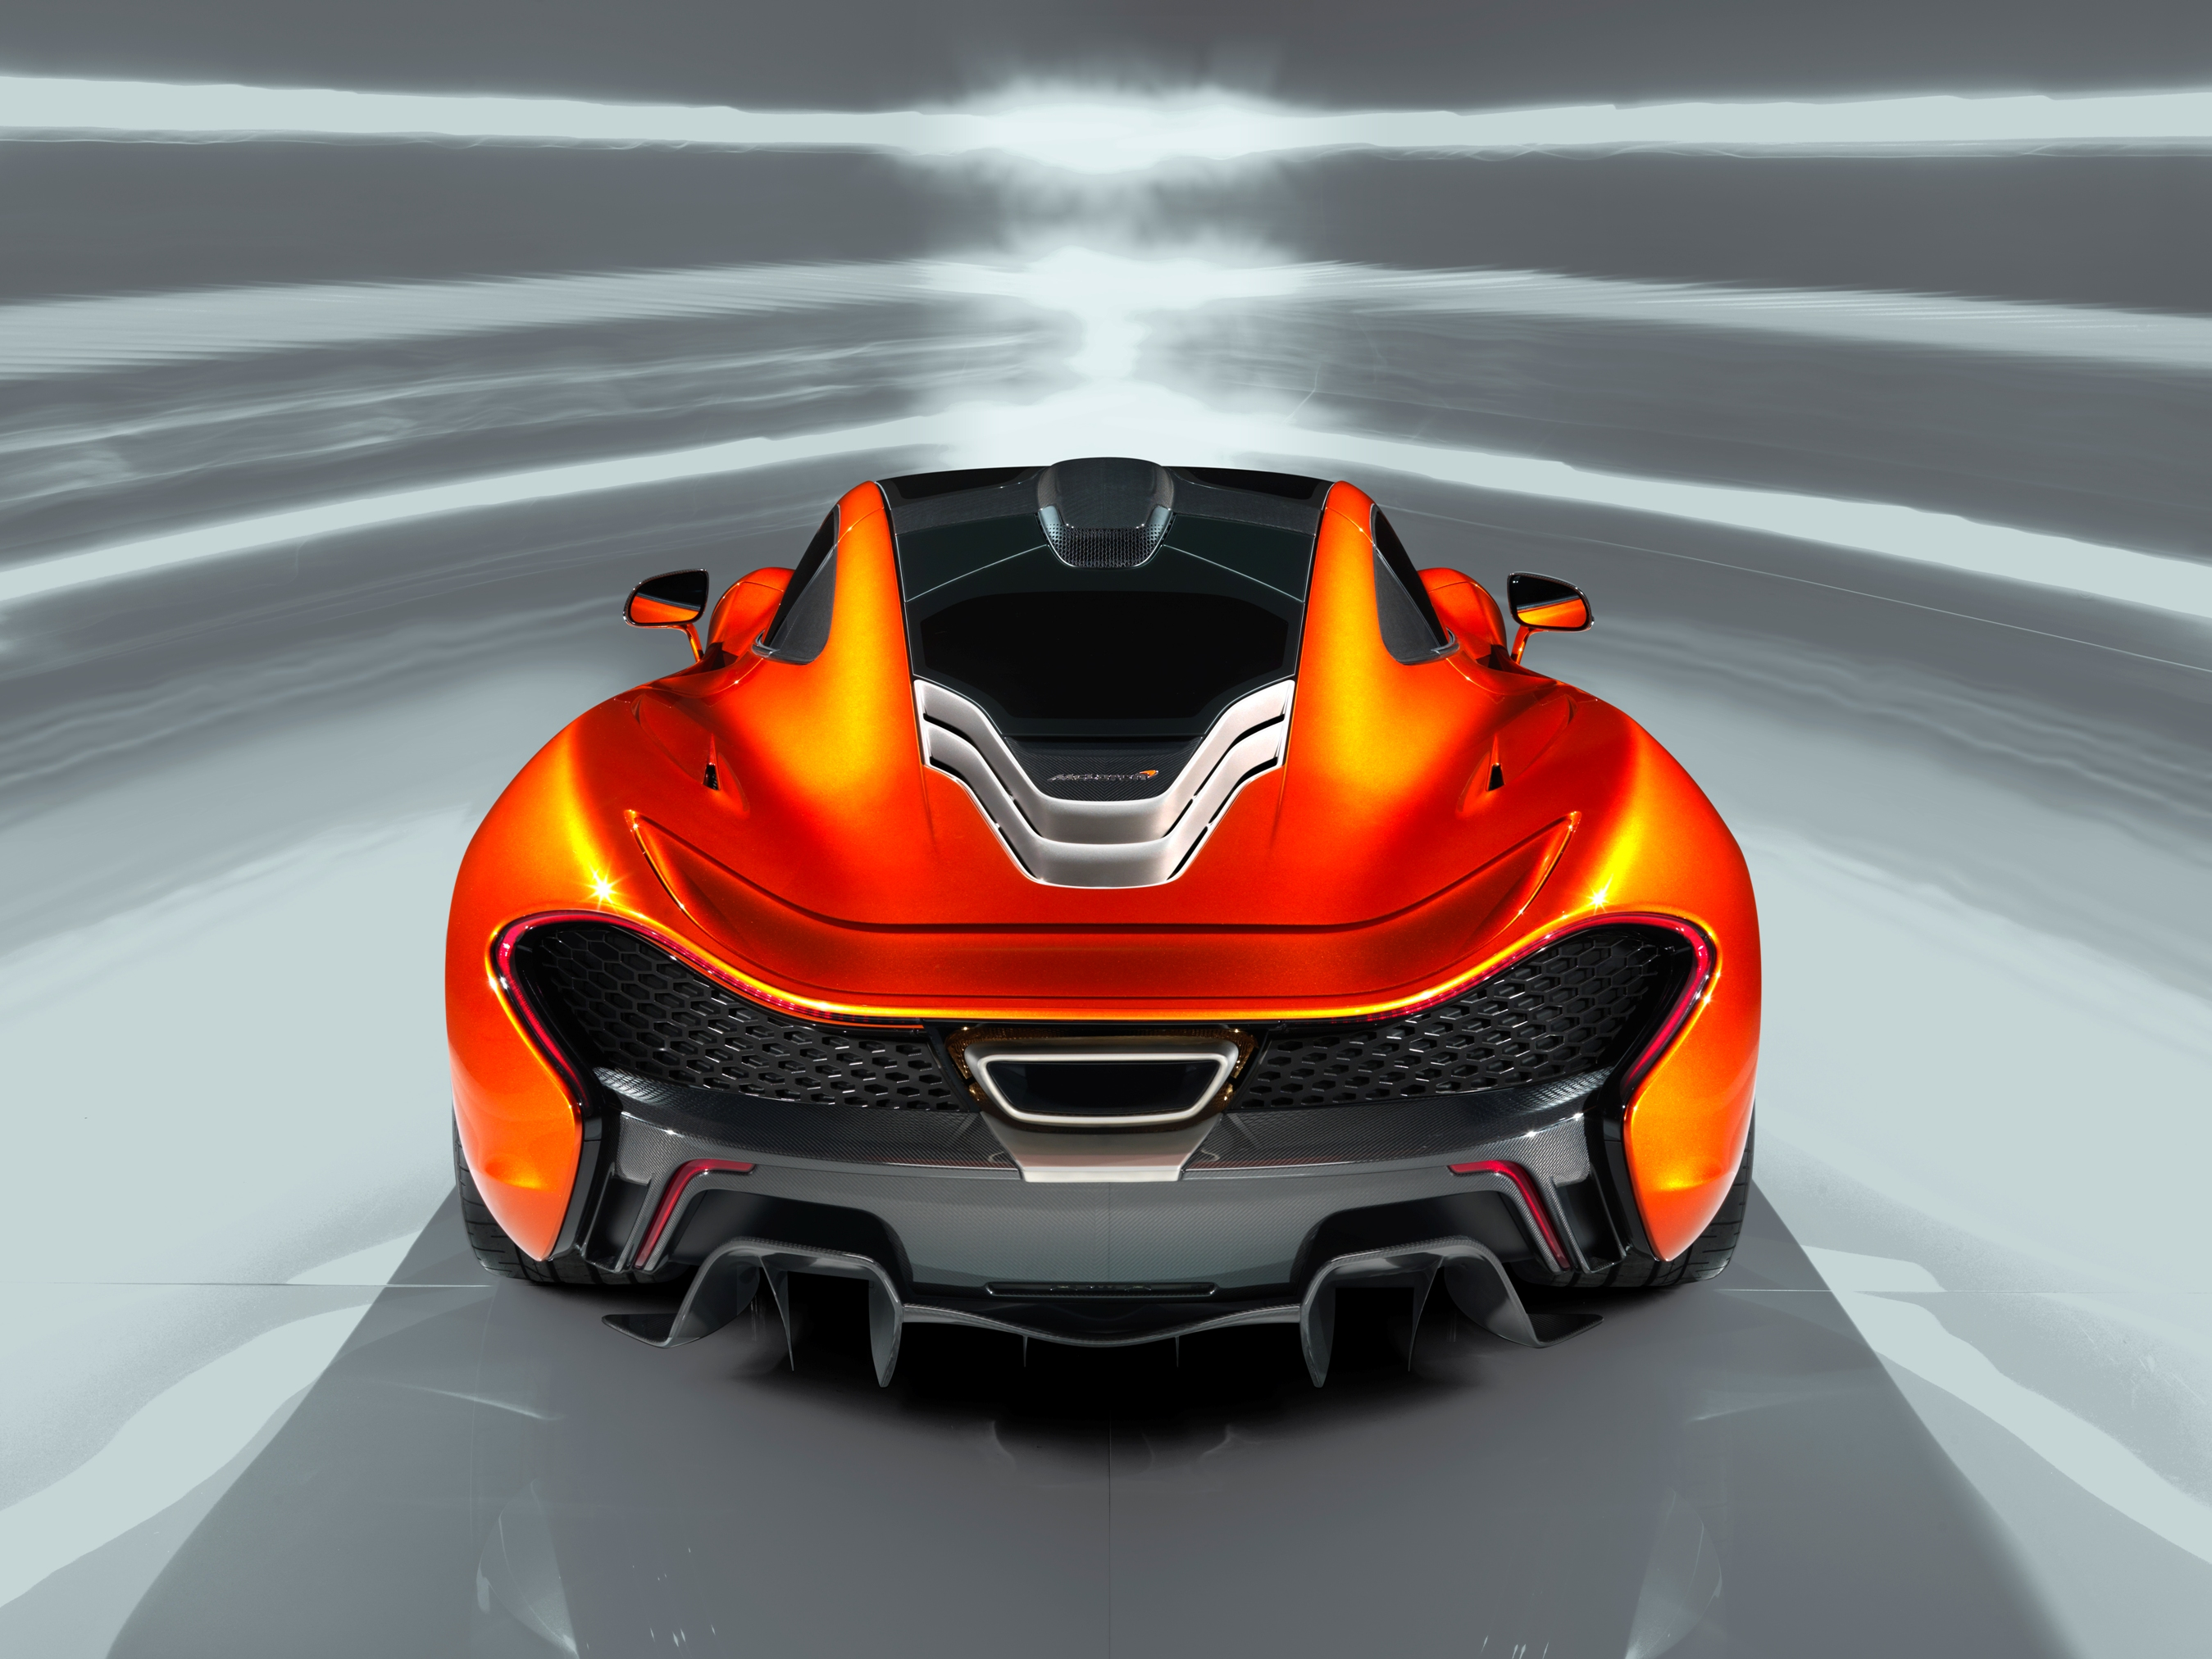 McLaren P1 Paris design concept - rear above